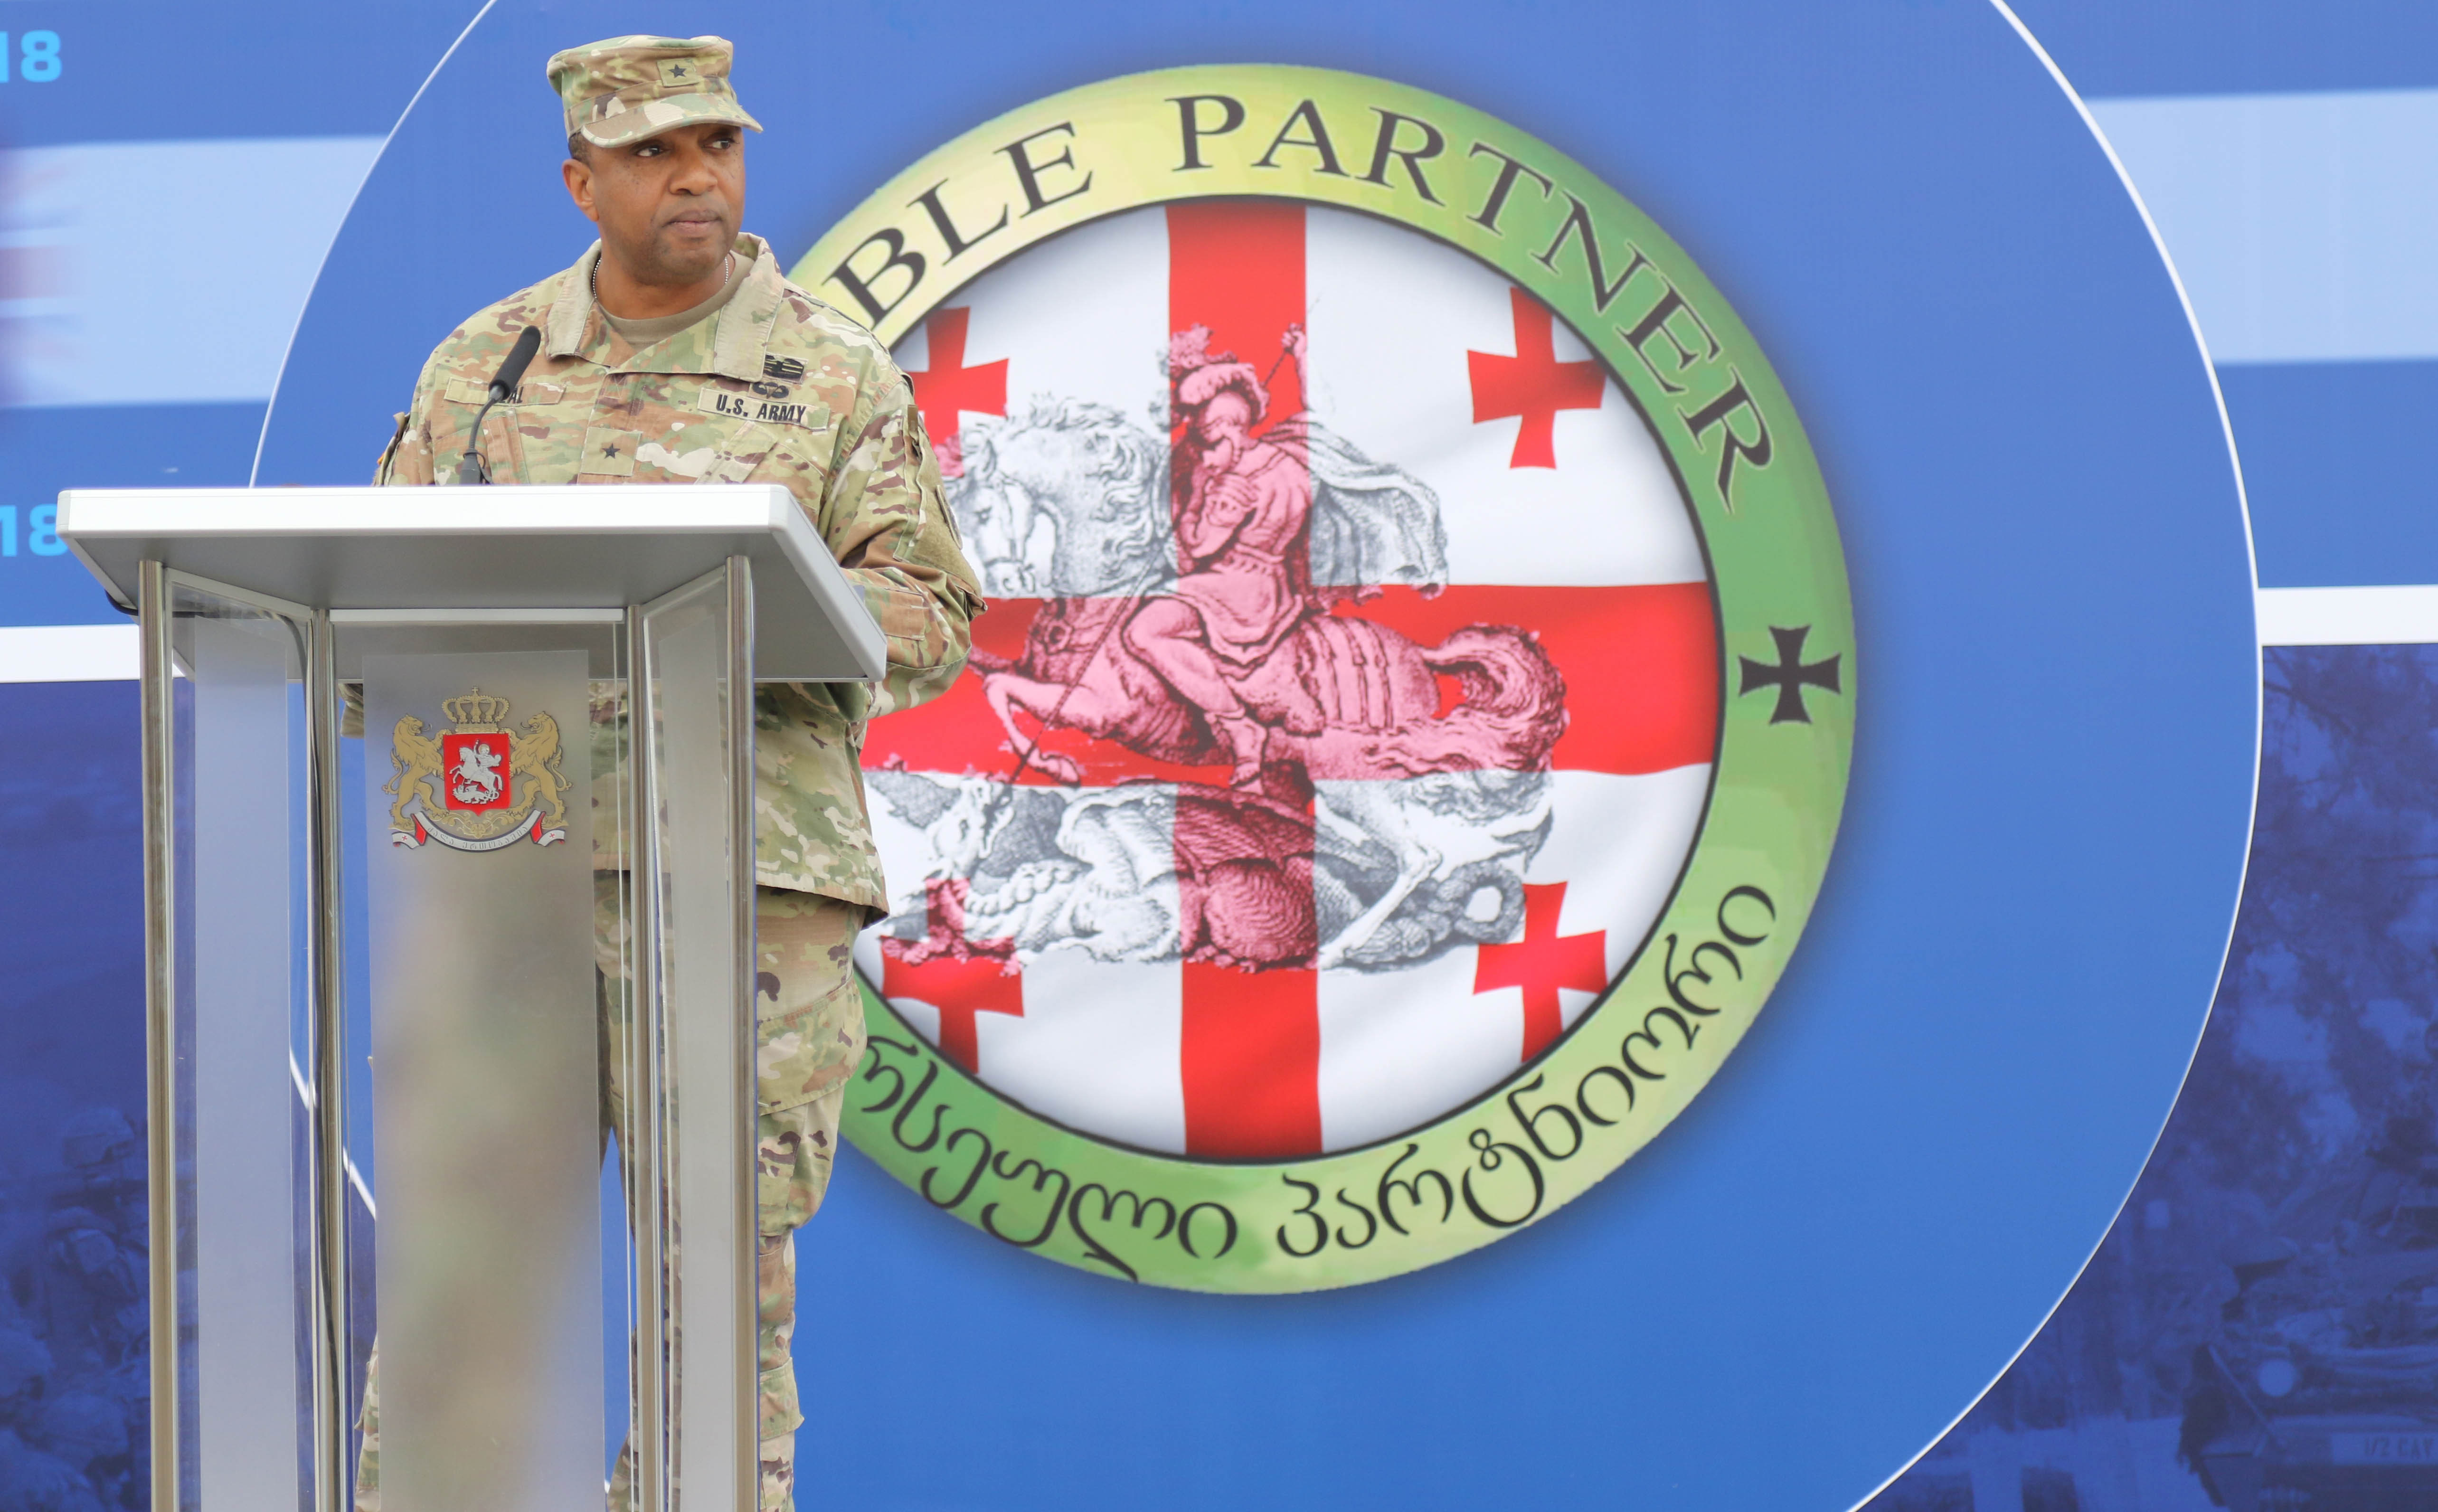 Brig. Gen. Reginald Neal, Director of the Joint Staff for the Georgia National Guard, makes his remarks during the closing ceremony for Noble Partner 18 at Vaziani Training Area, Georgia, Aug. 15, 2018. Noble Partner 18 was a cooperatively-led multinational training exercise in its fourth iteration which supported the training of Georgian Armed Forces' mechanized and Special Operation Forces, U.S. Regionally Aligned Forces, the U.S. Army and Air National Guard from the state of Georgia, and 11 other participating nations. (U.S. Army photo by Sgt. Kris Bonet)